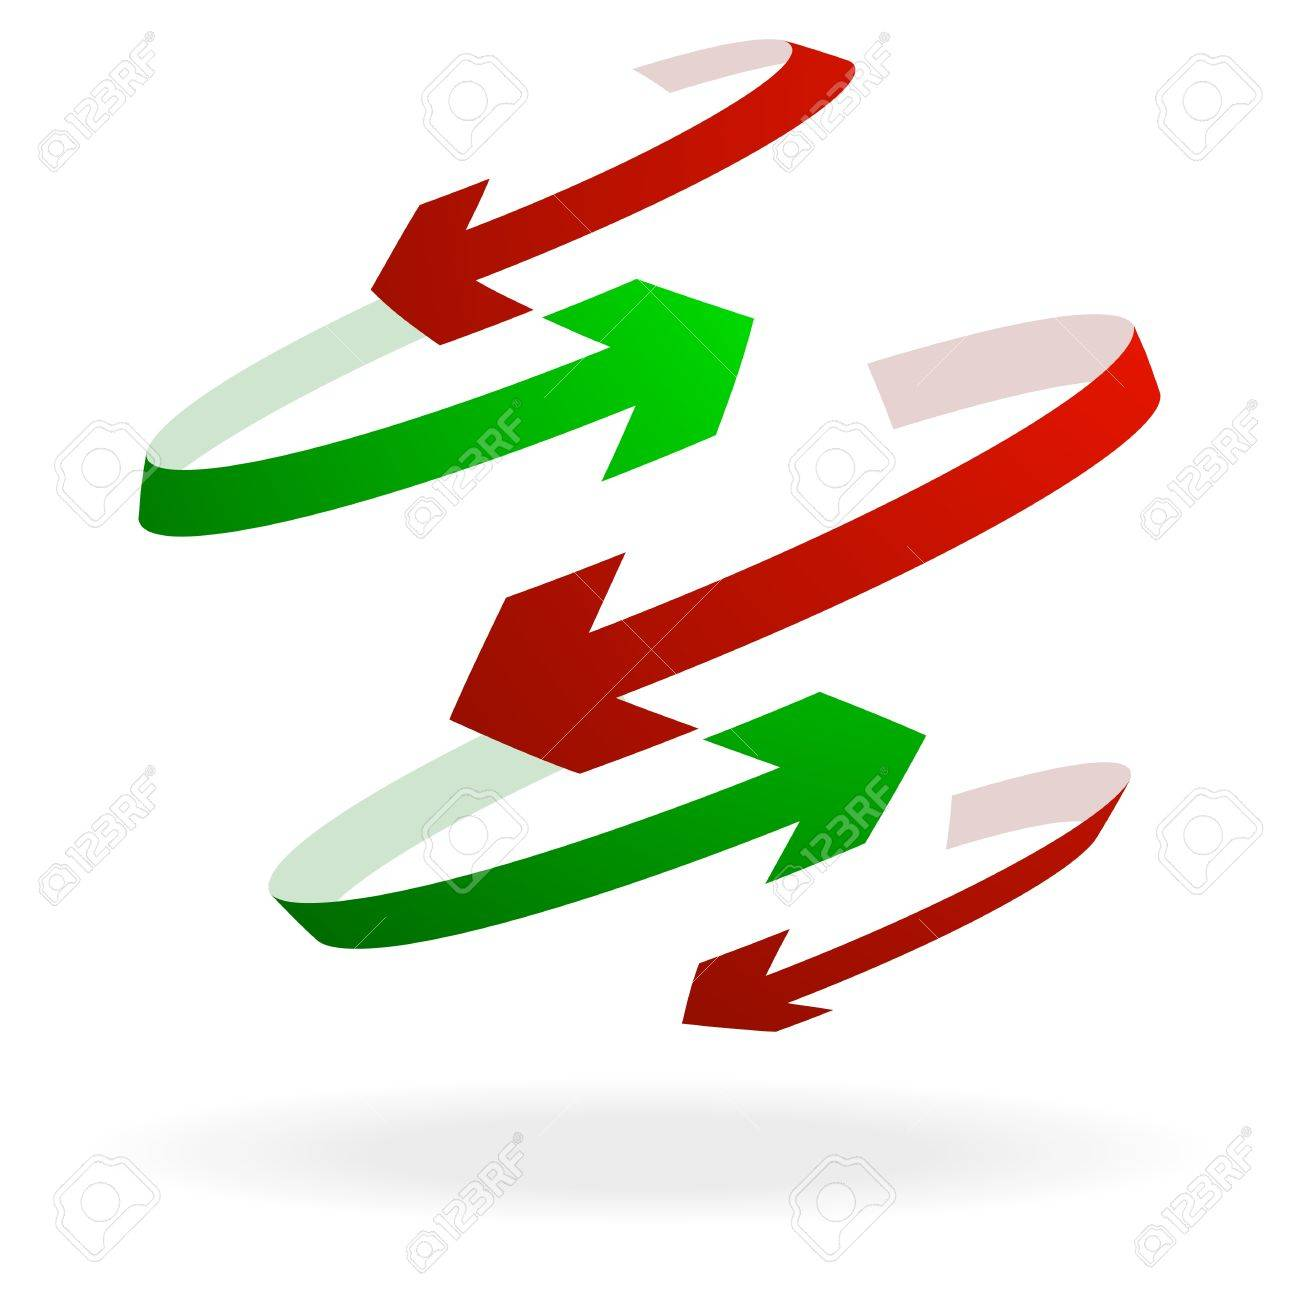 Illustration Of Colorful Arrows Pointing In Different Directions